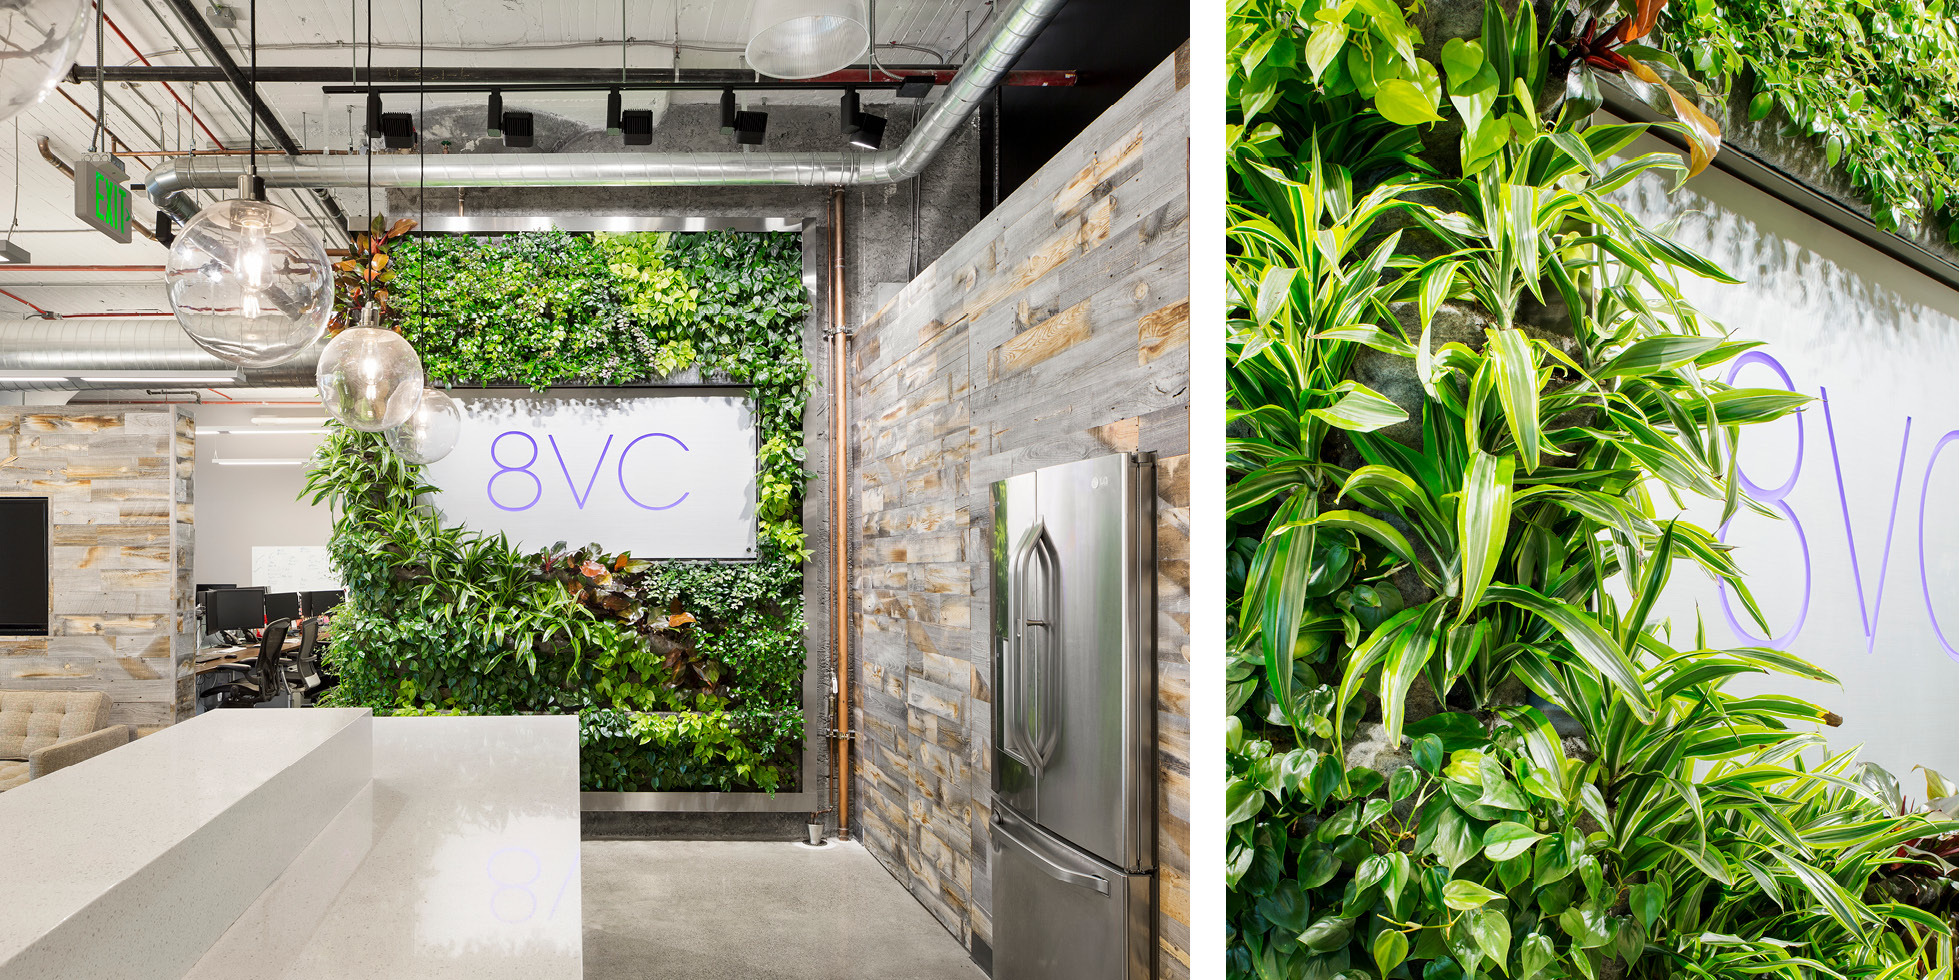 8VC Living Wall by Habitat Horticulture - View 2